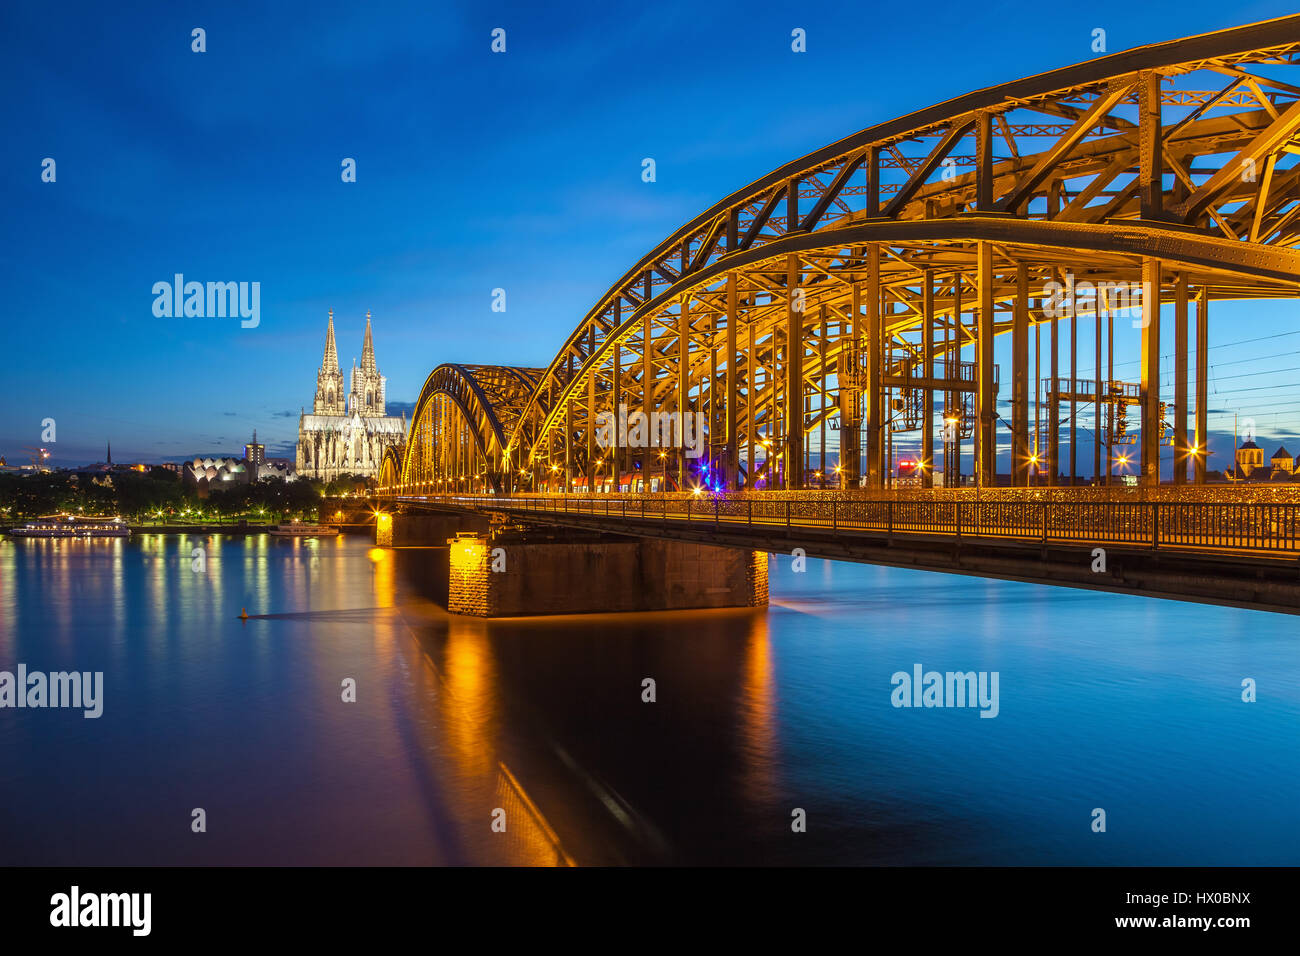 Cologne city skyline at night, Cologne, Germany - Stock Image